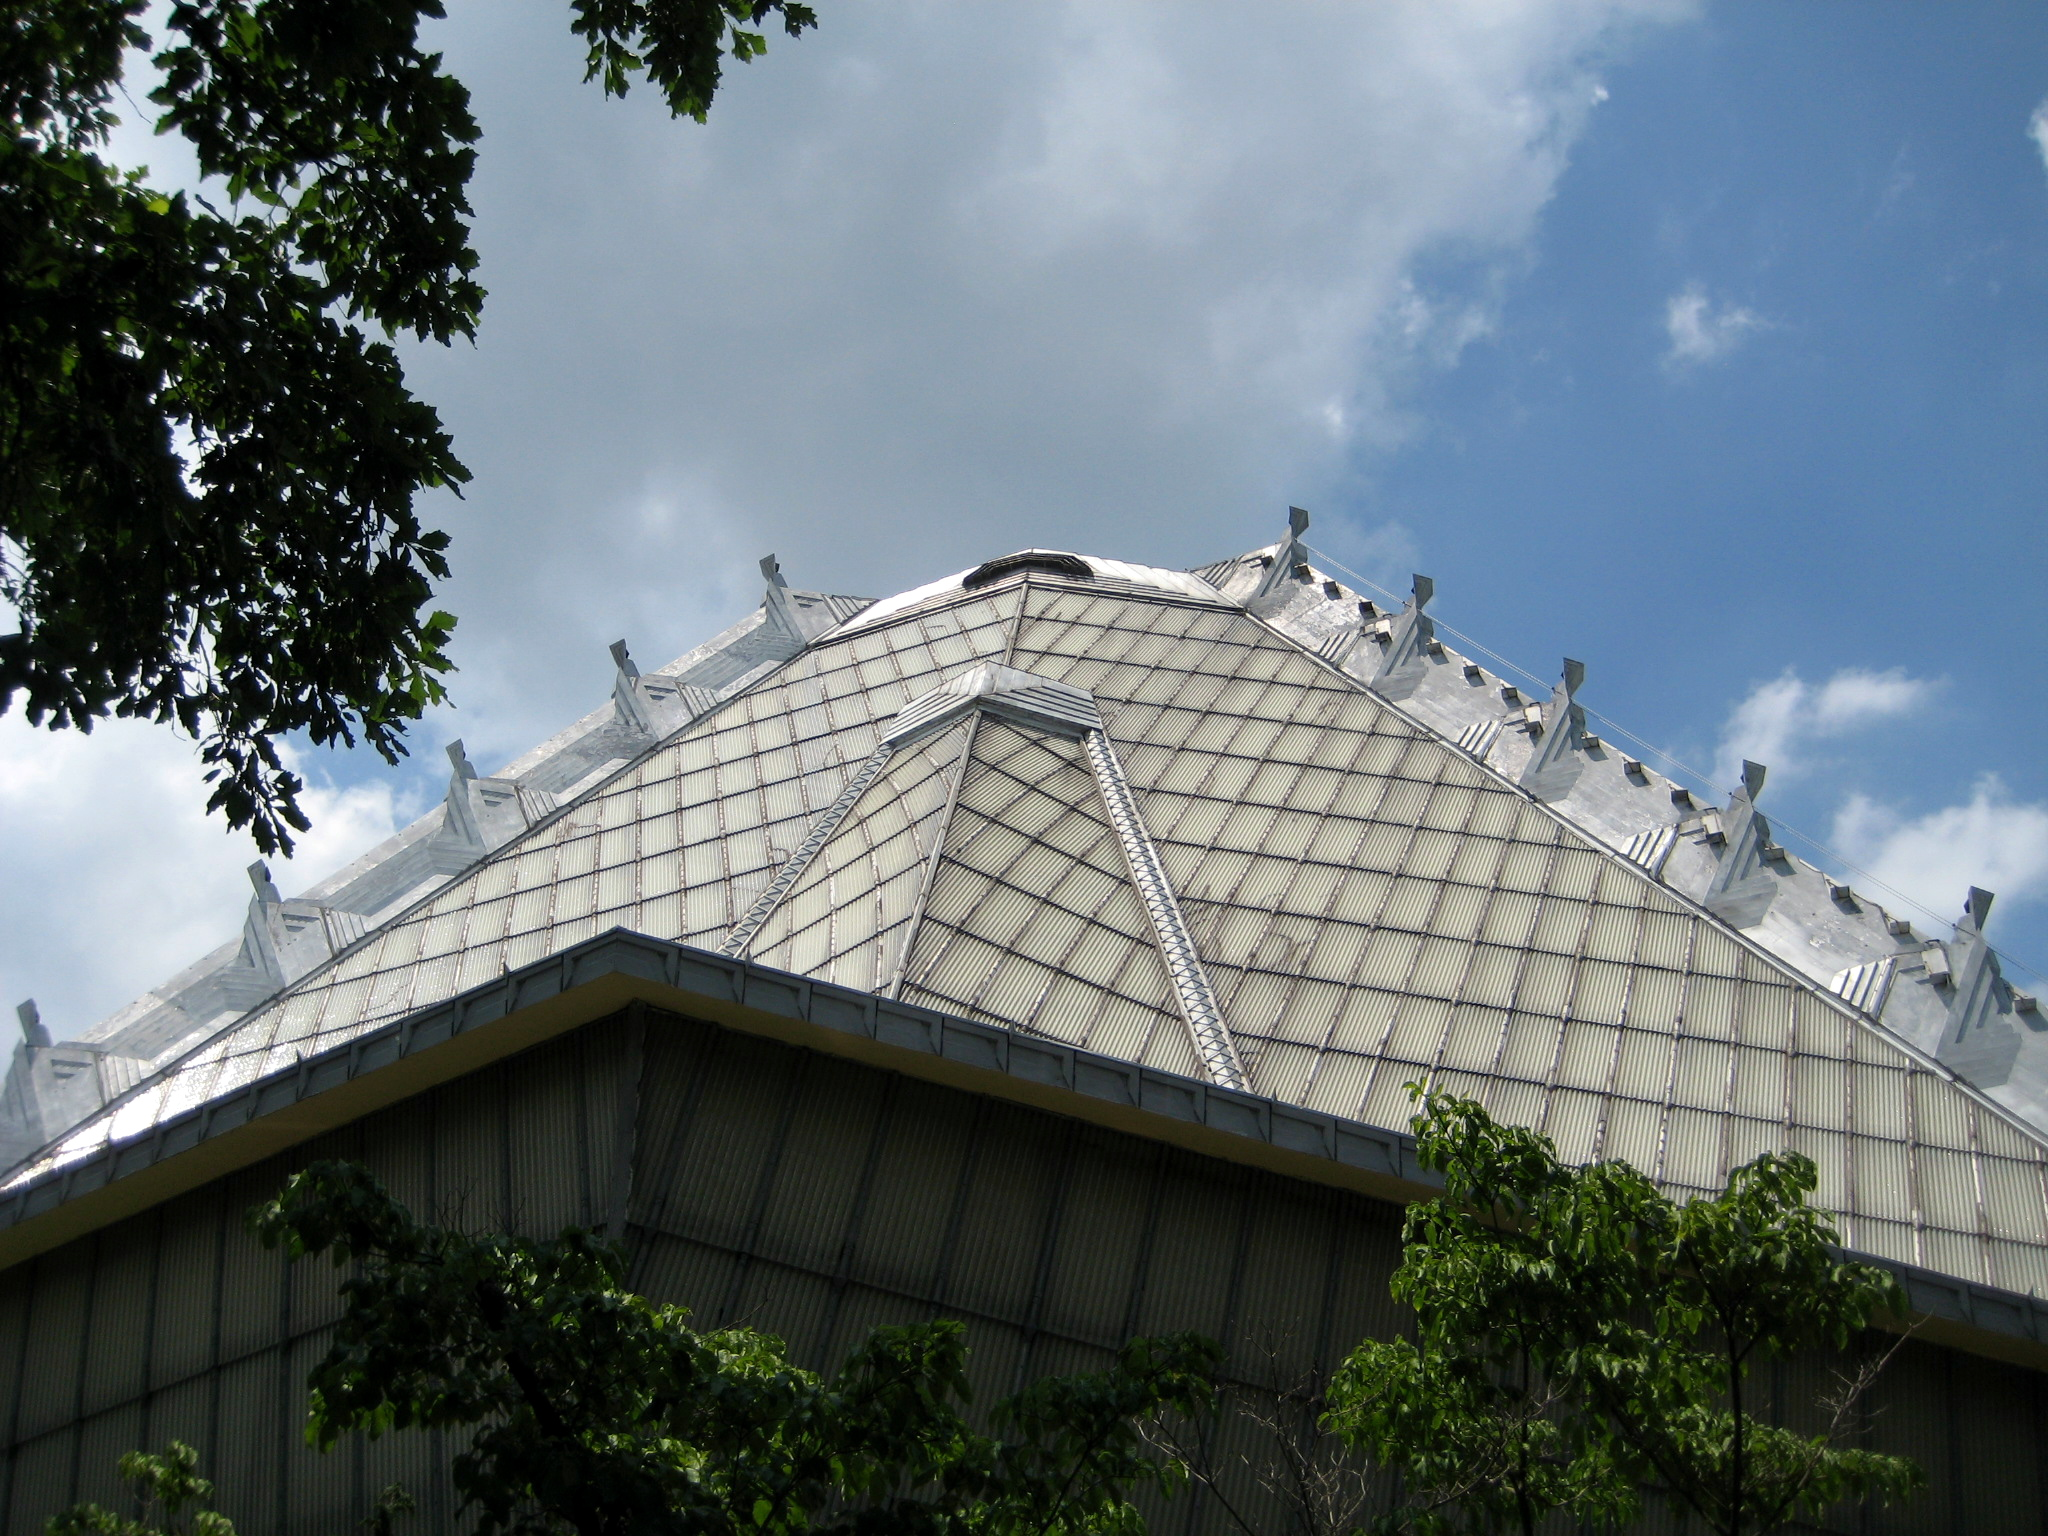 The roof of Beth Sholom Synagogue in Elkins Park, Pa.